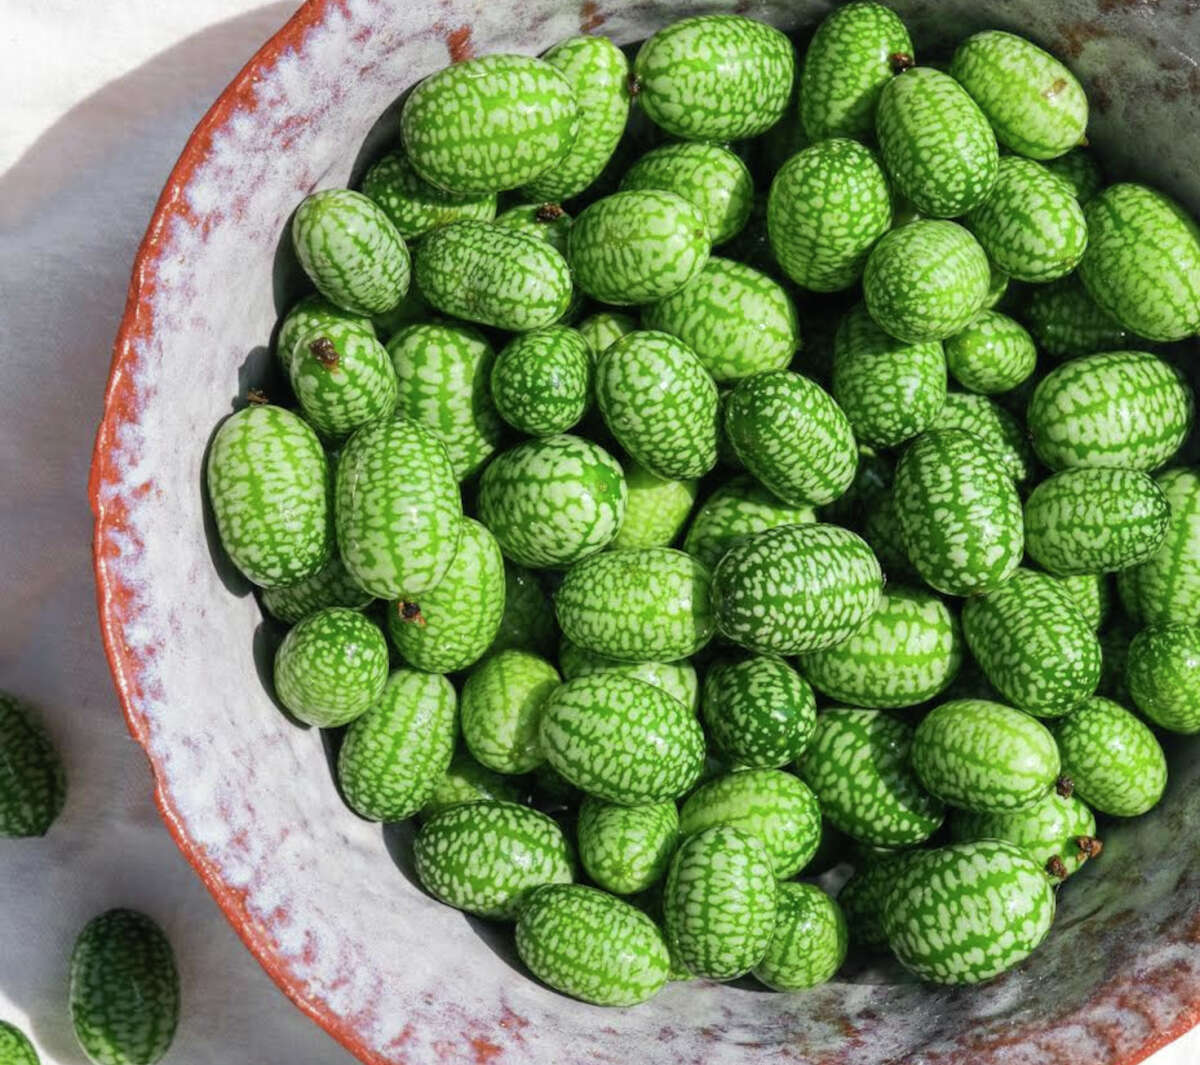 Cucamelons from Forts Ferry Farm in Colonie.